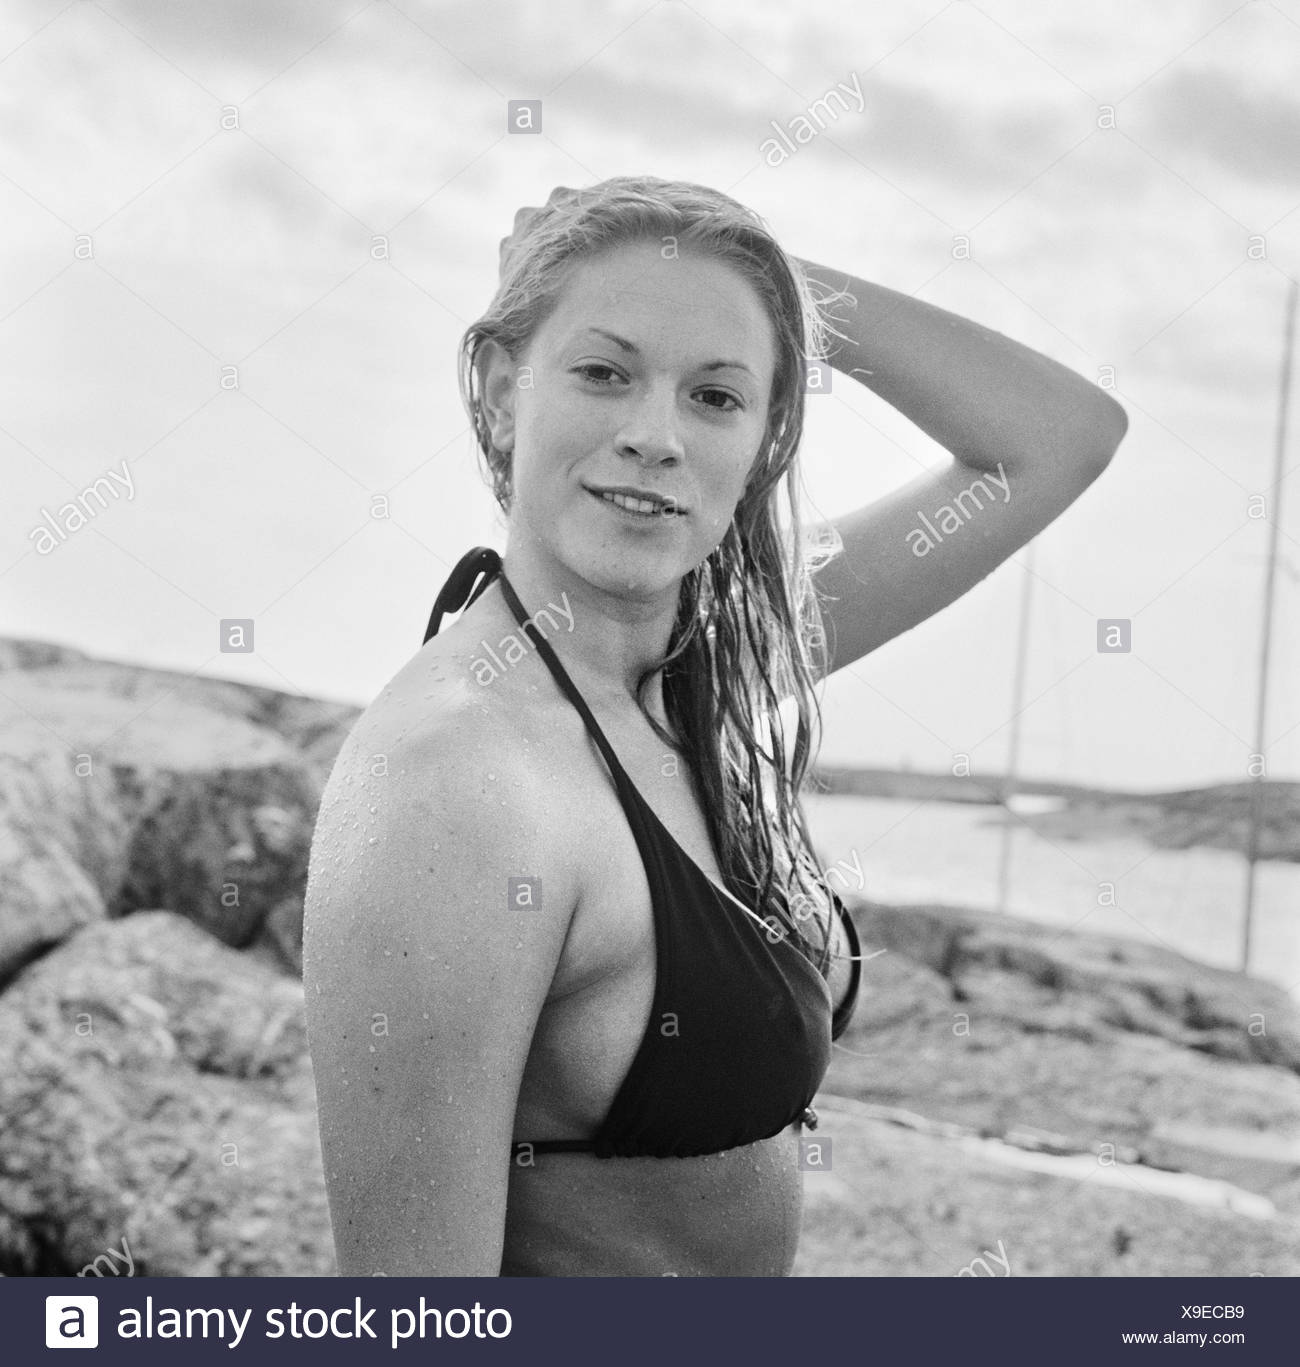 A young woman in bikini, Sweden. - Stock Image